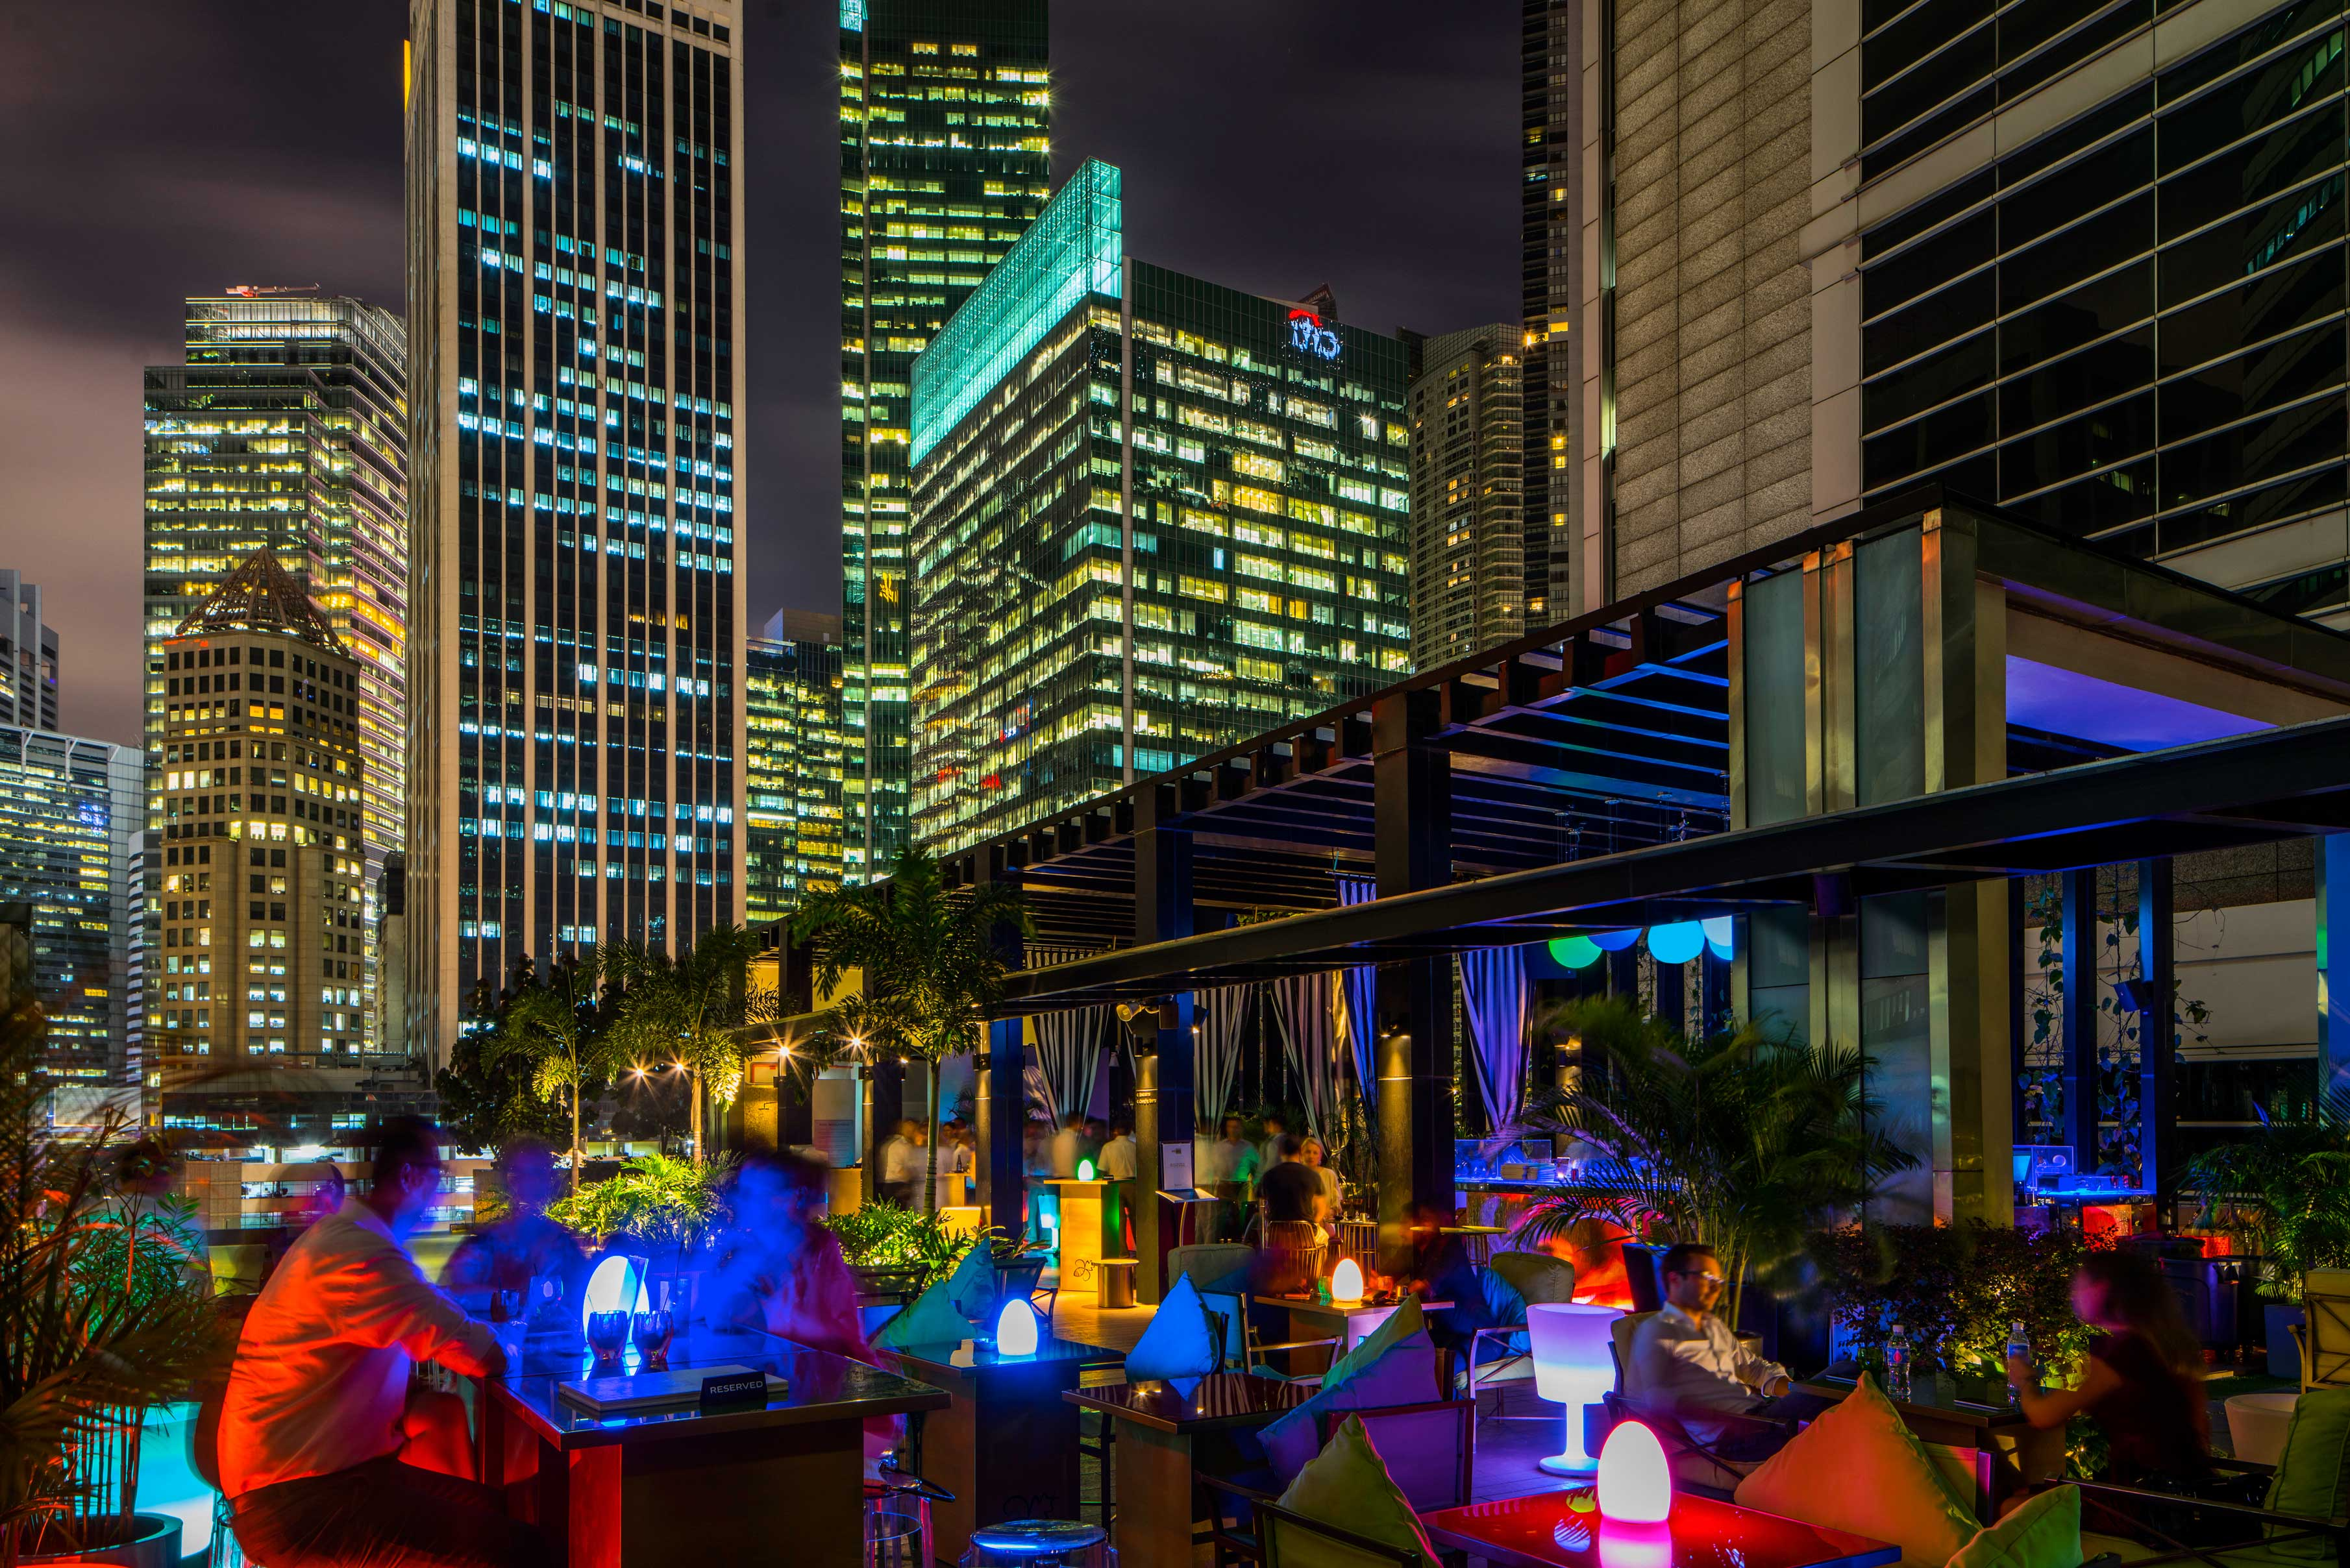 Swimming-pool-party-venuerific-blog-hi-so-rooftop-bar-night